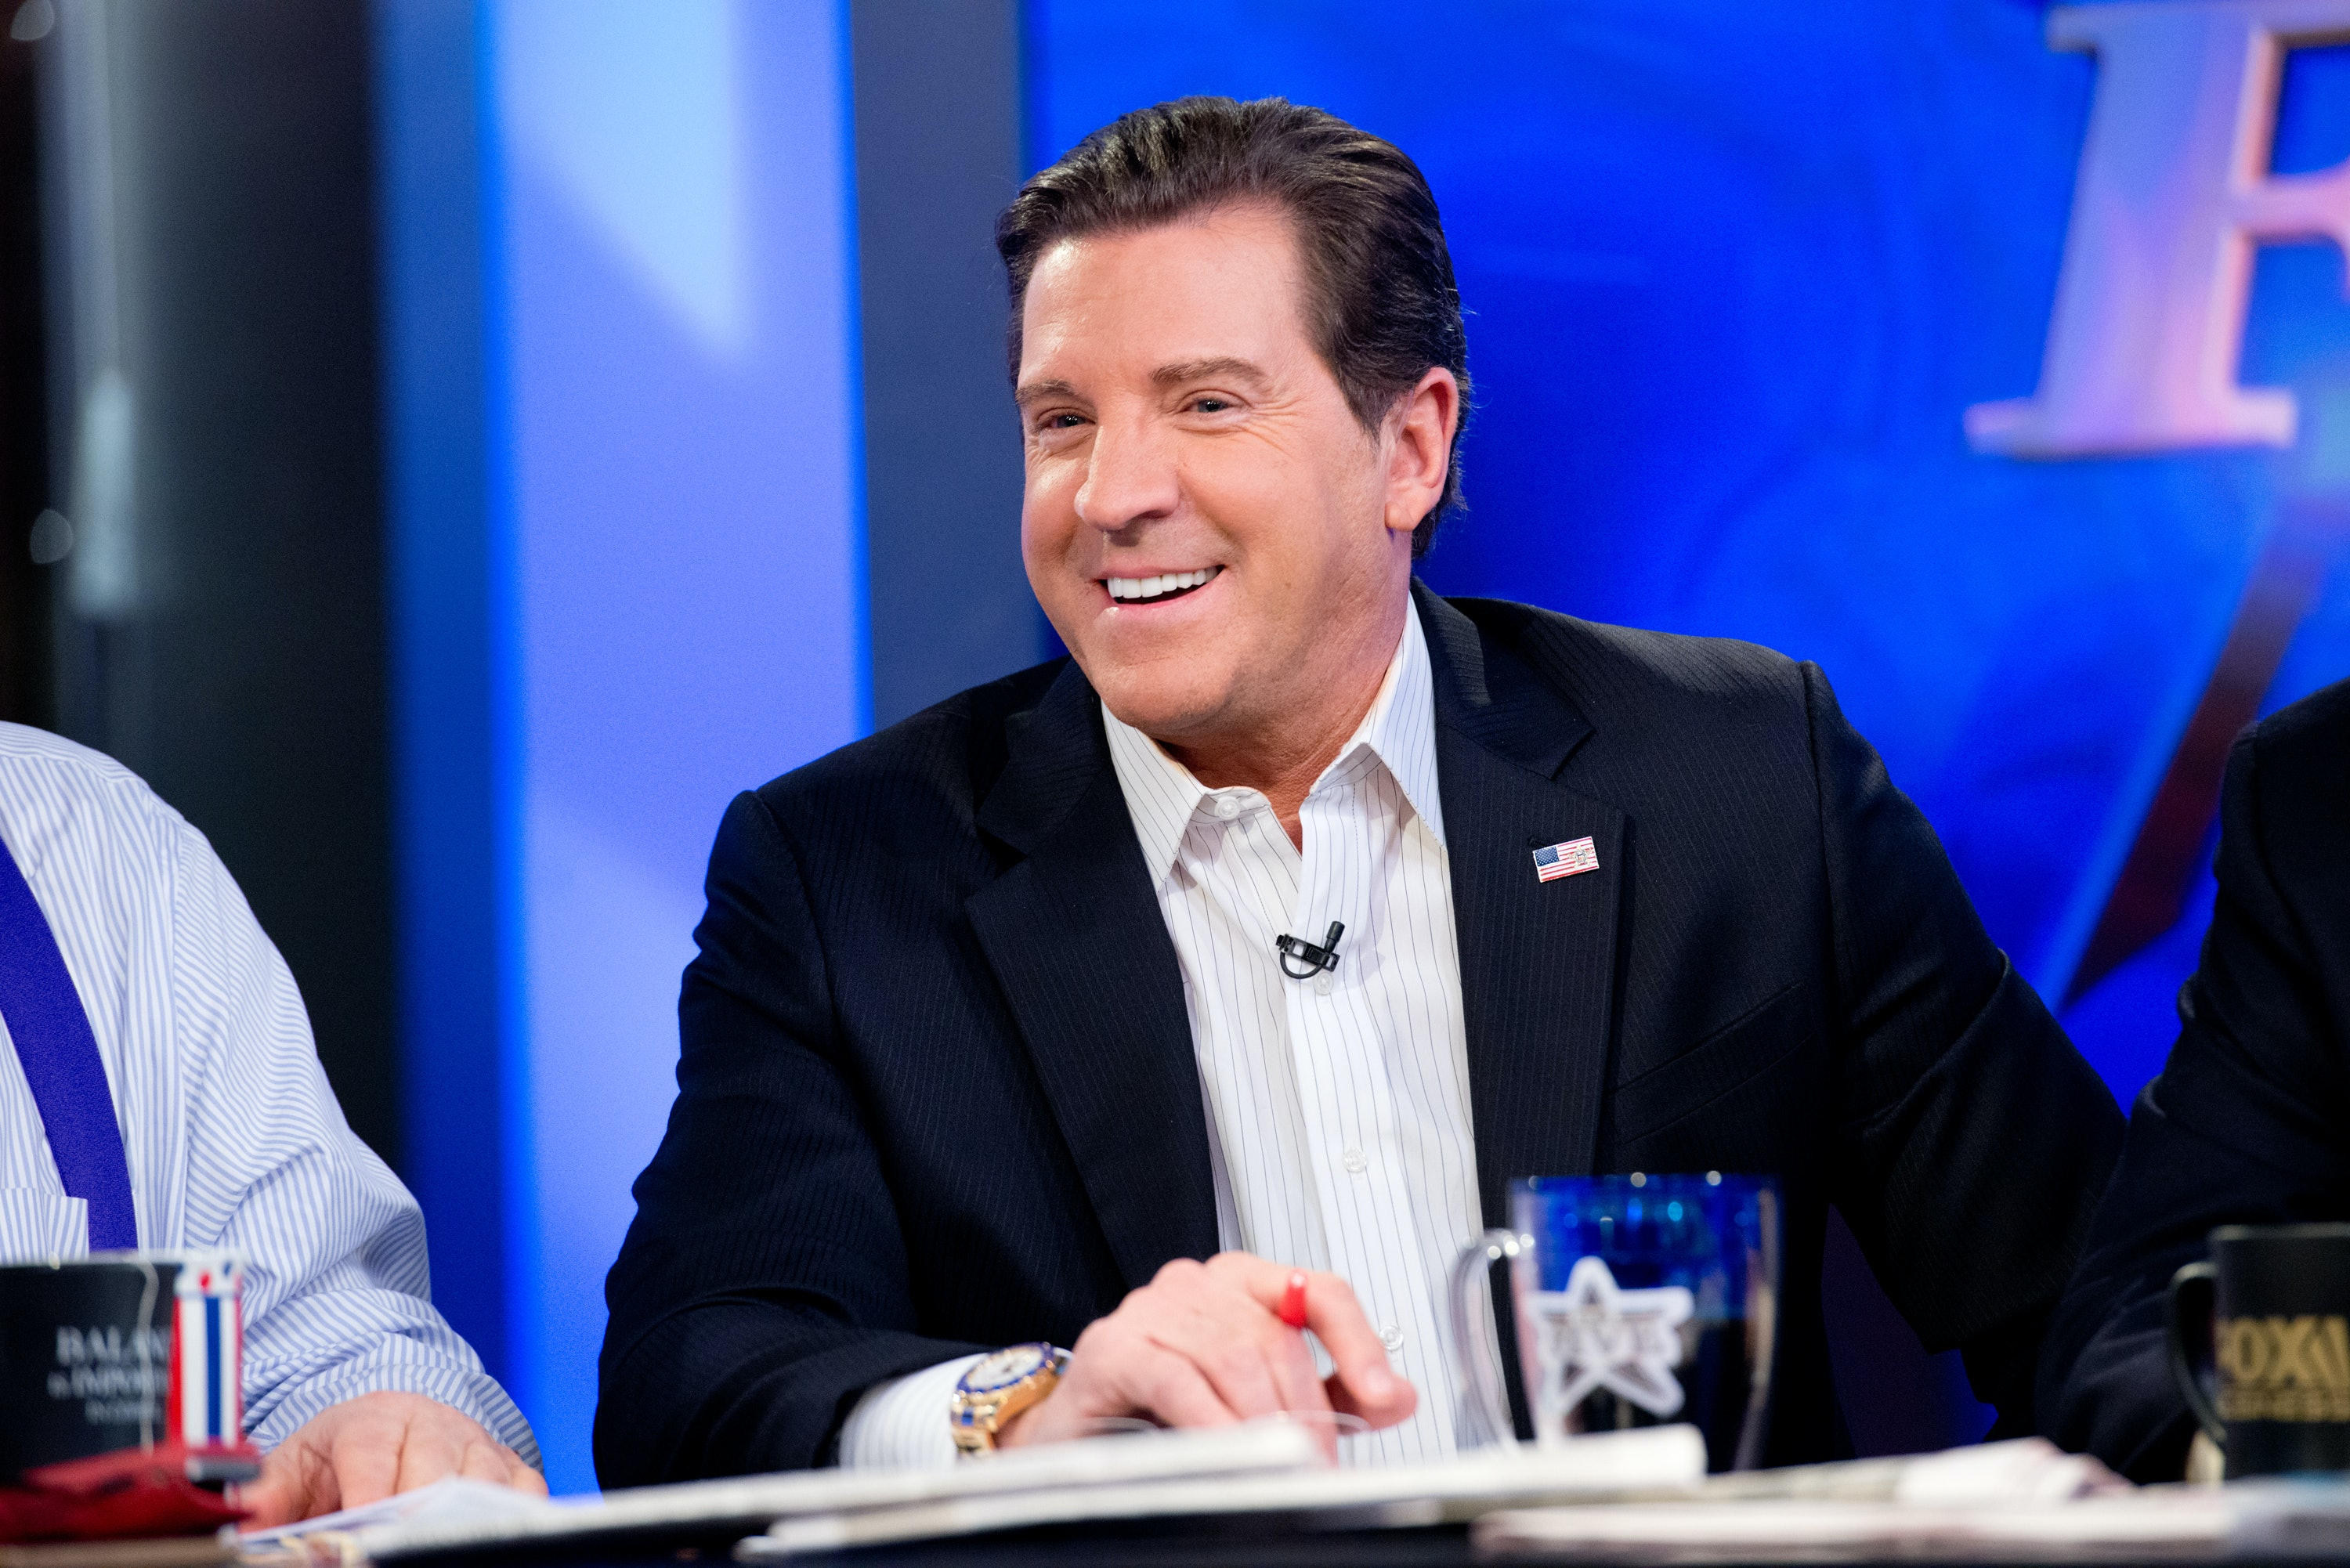 Eric Bolling suspended by Fox News amid claims of inappropriate behavior